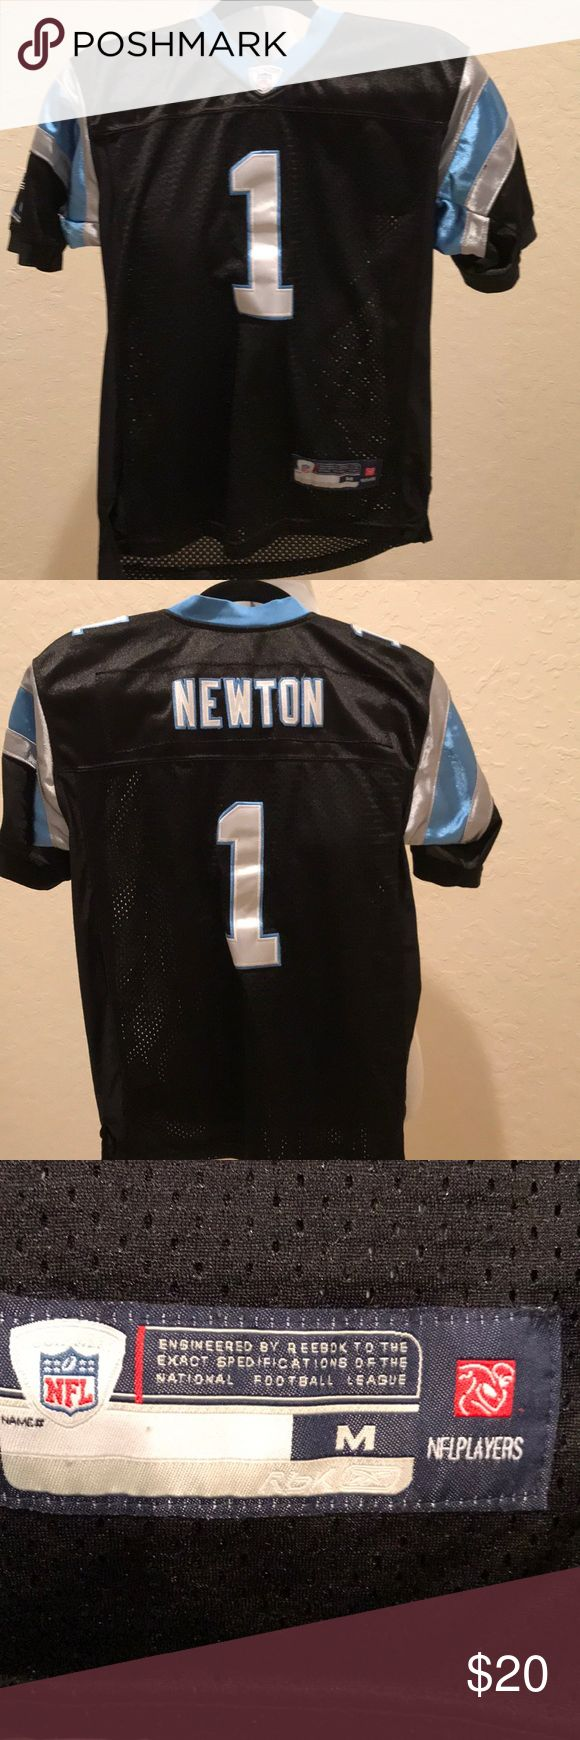 Youth Size Cam Newton Jersey! Reebok Youth medium jersey is in very good condition. Numbers are just a little bent from being folded in a drawer. No damage Reebok Shirts & Tops